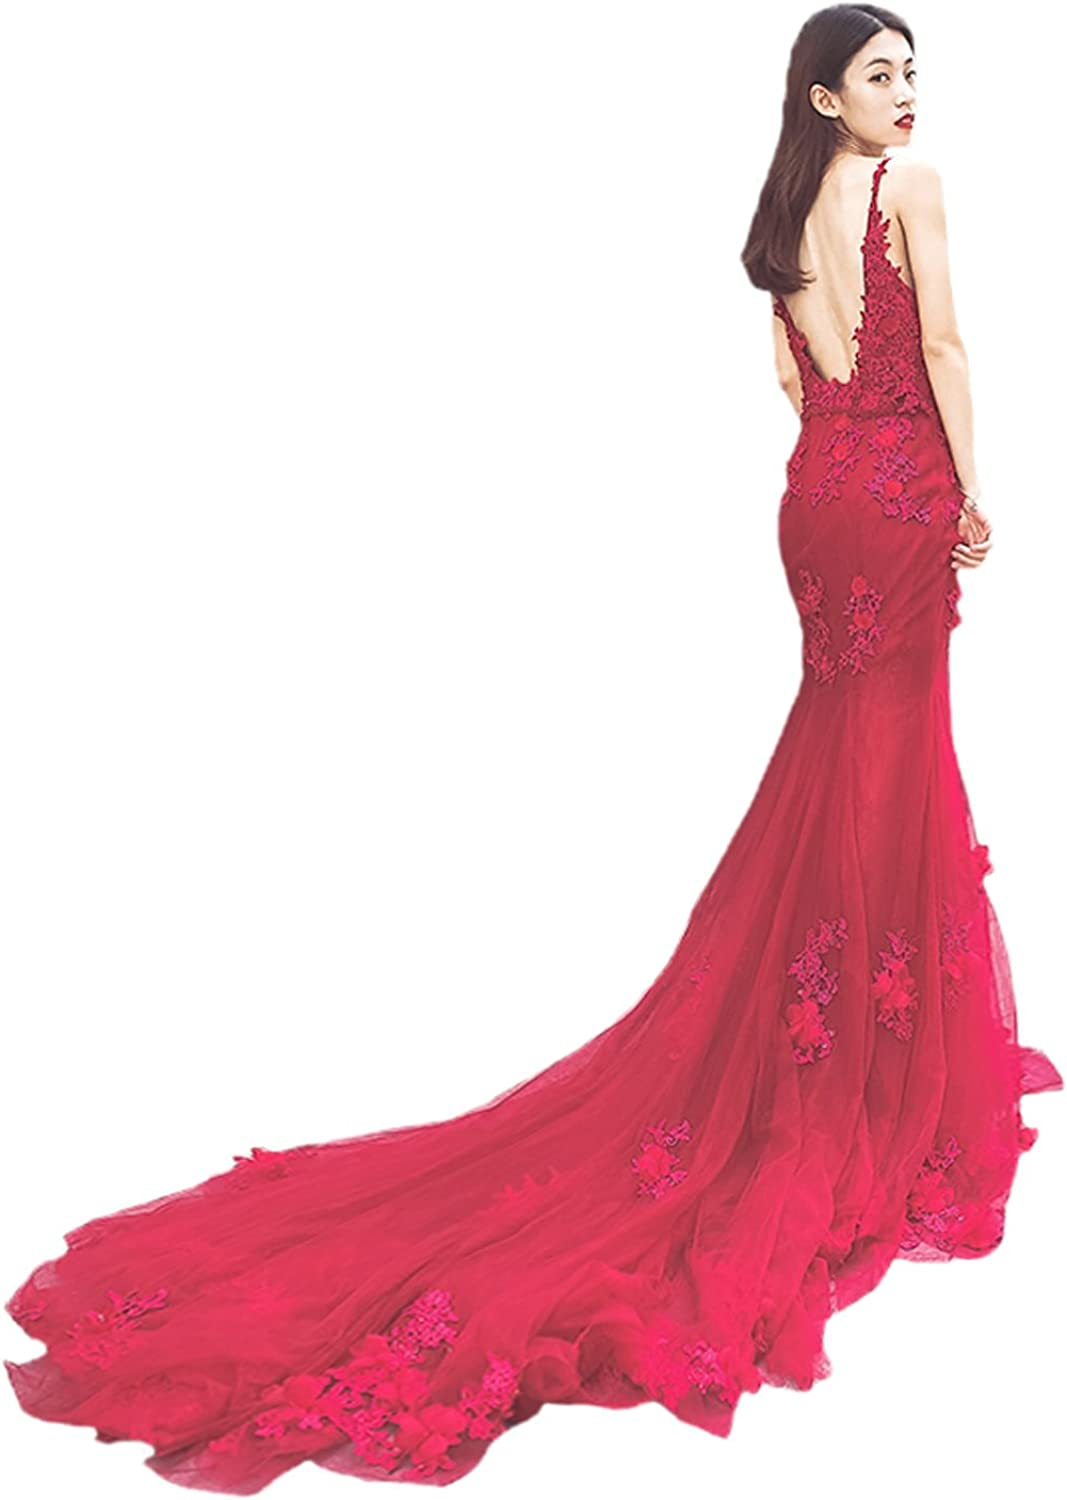 CIRCLEWLD Tulle Mermaid Evening Dresses for Women Wedding Lace Appliques Flowers Long EV115